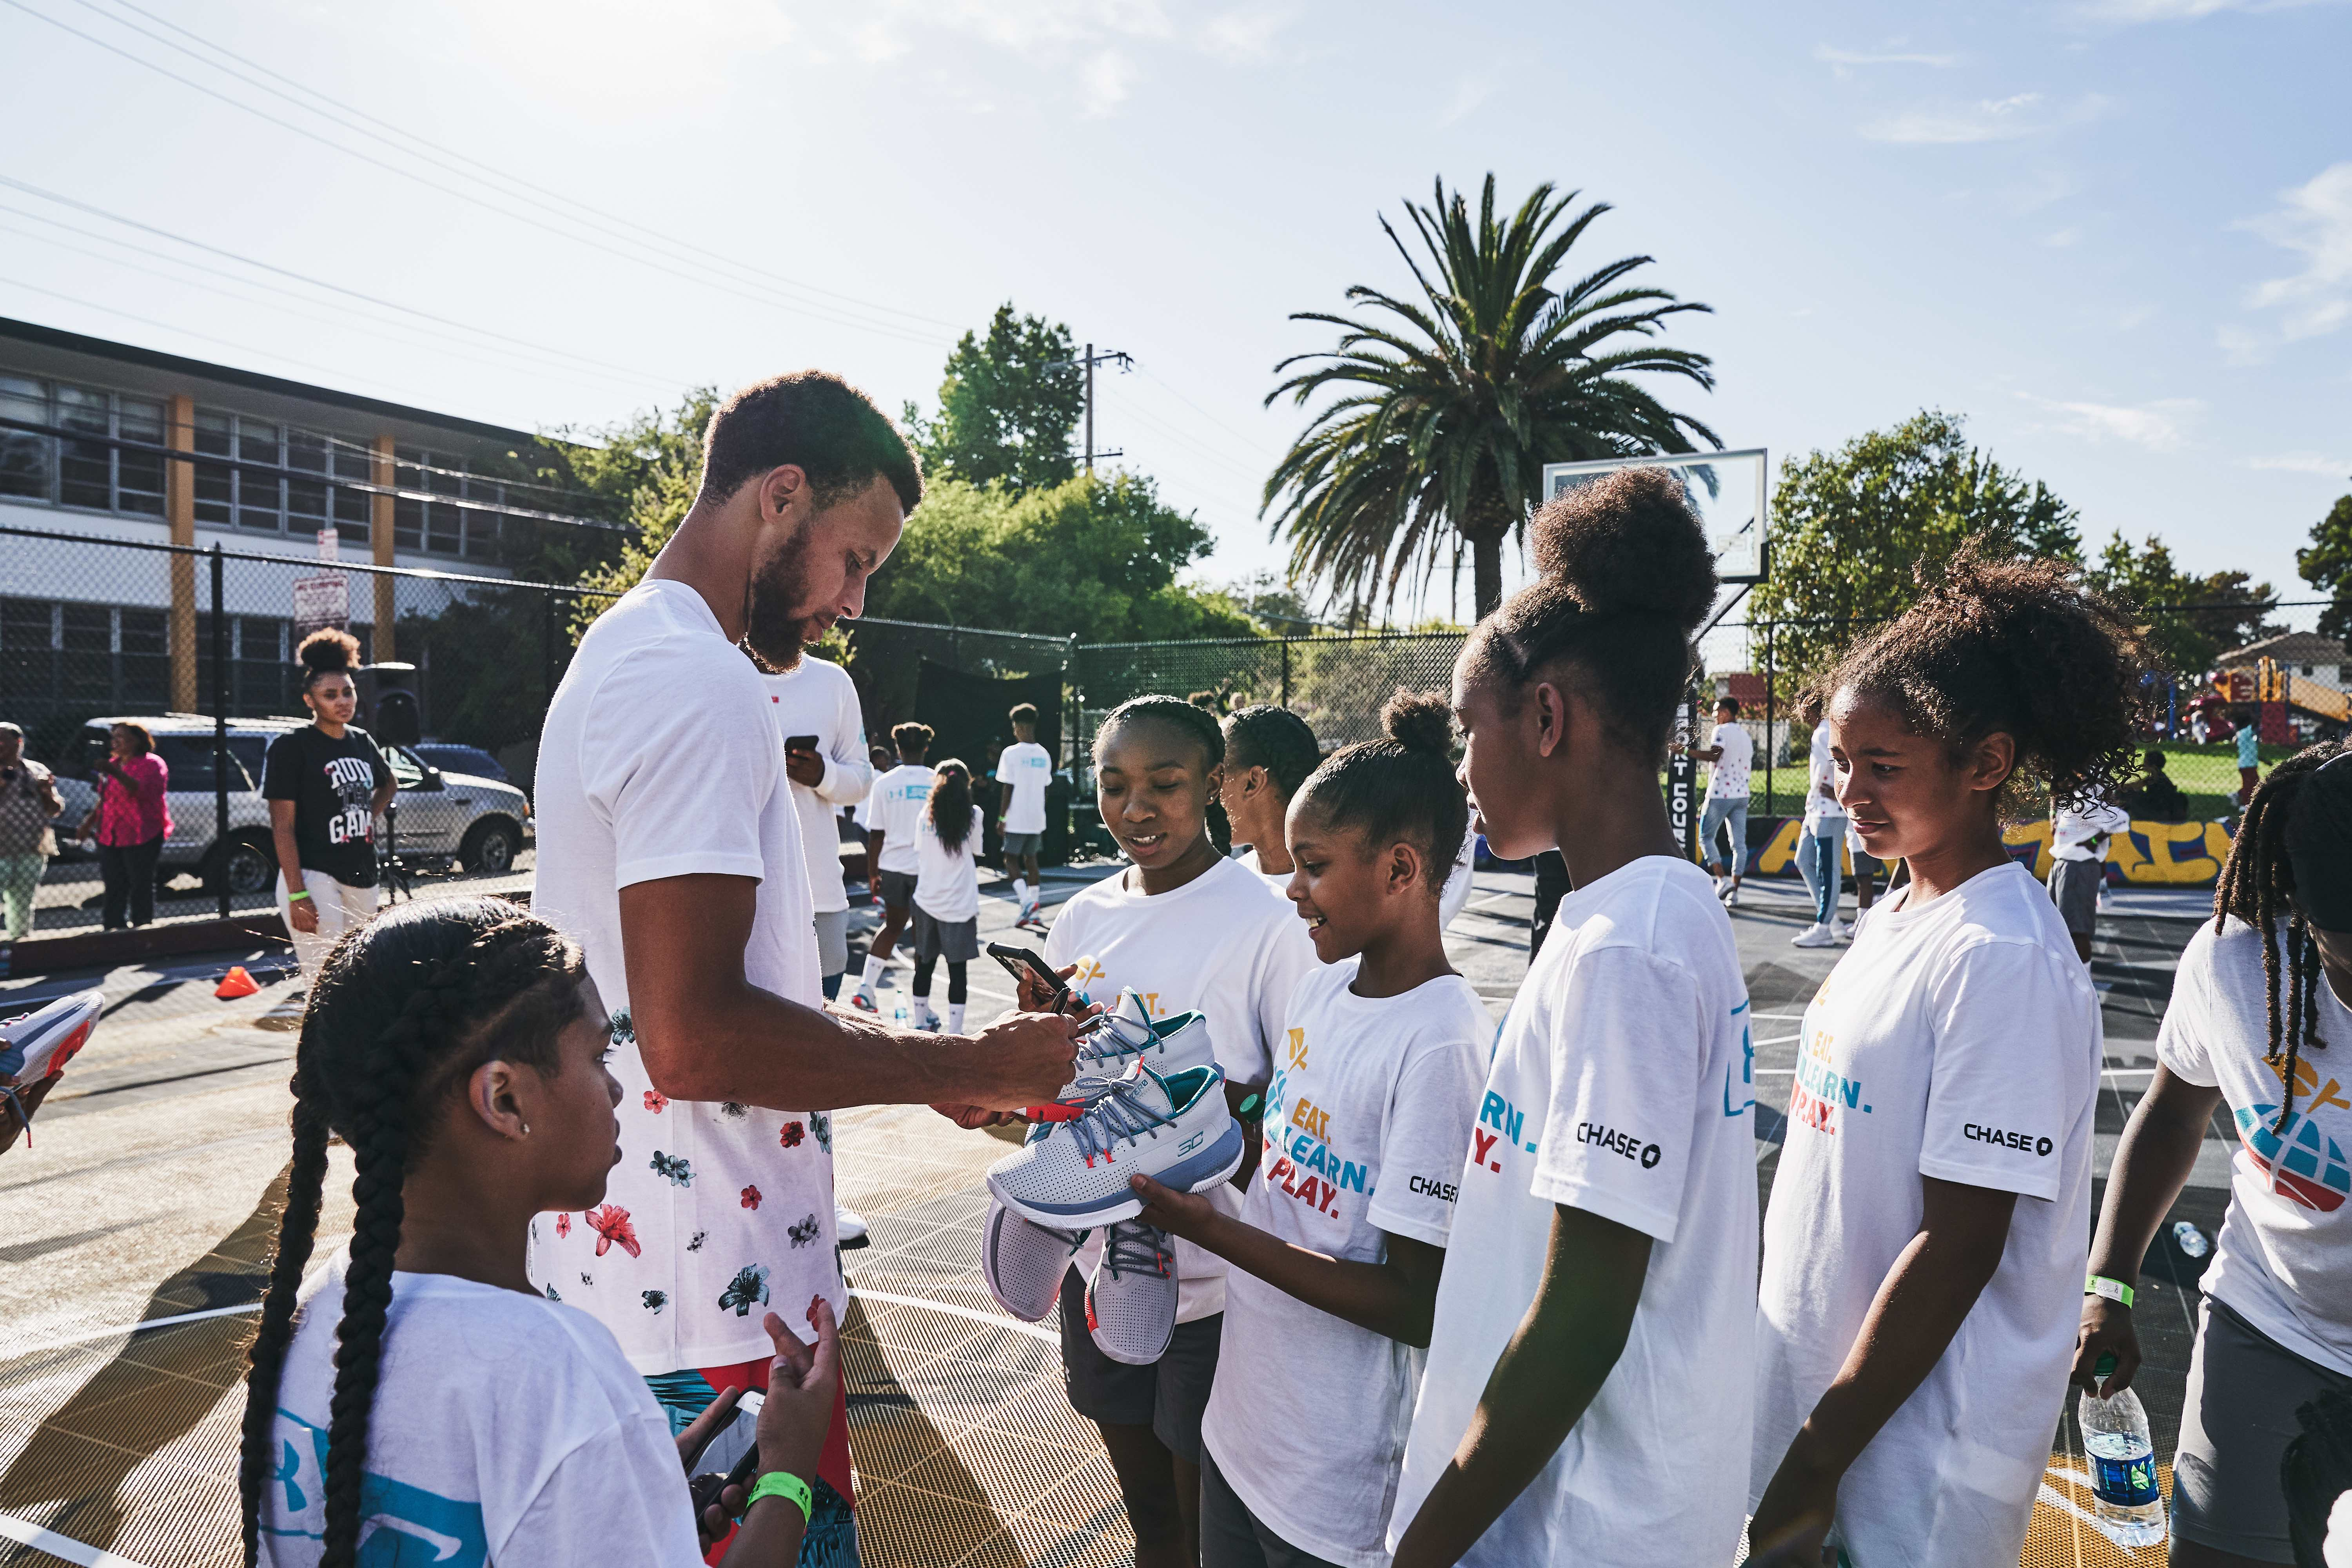 Photo: Stephen Curry meeting with fans at a 2019 event